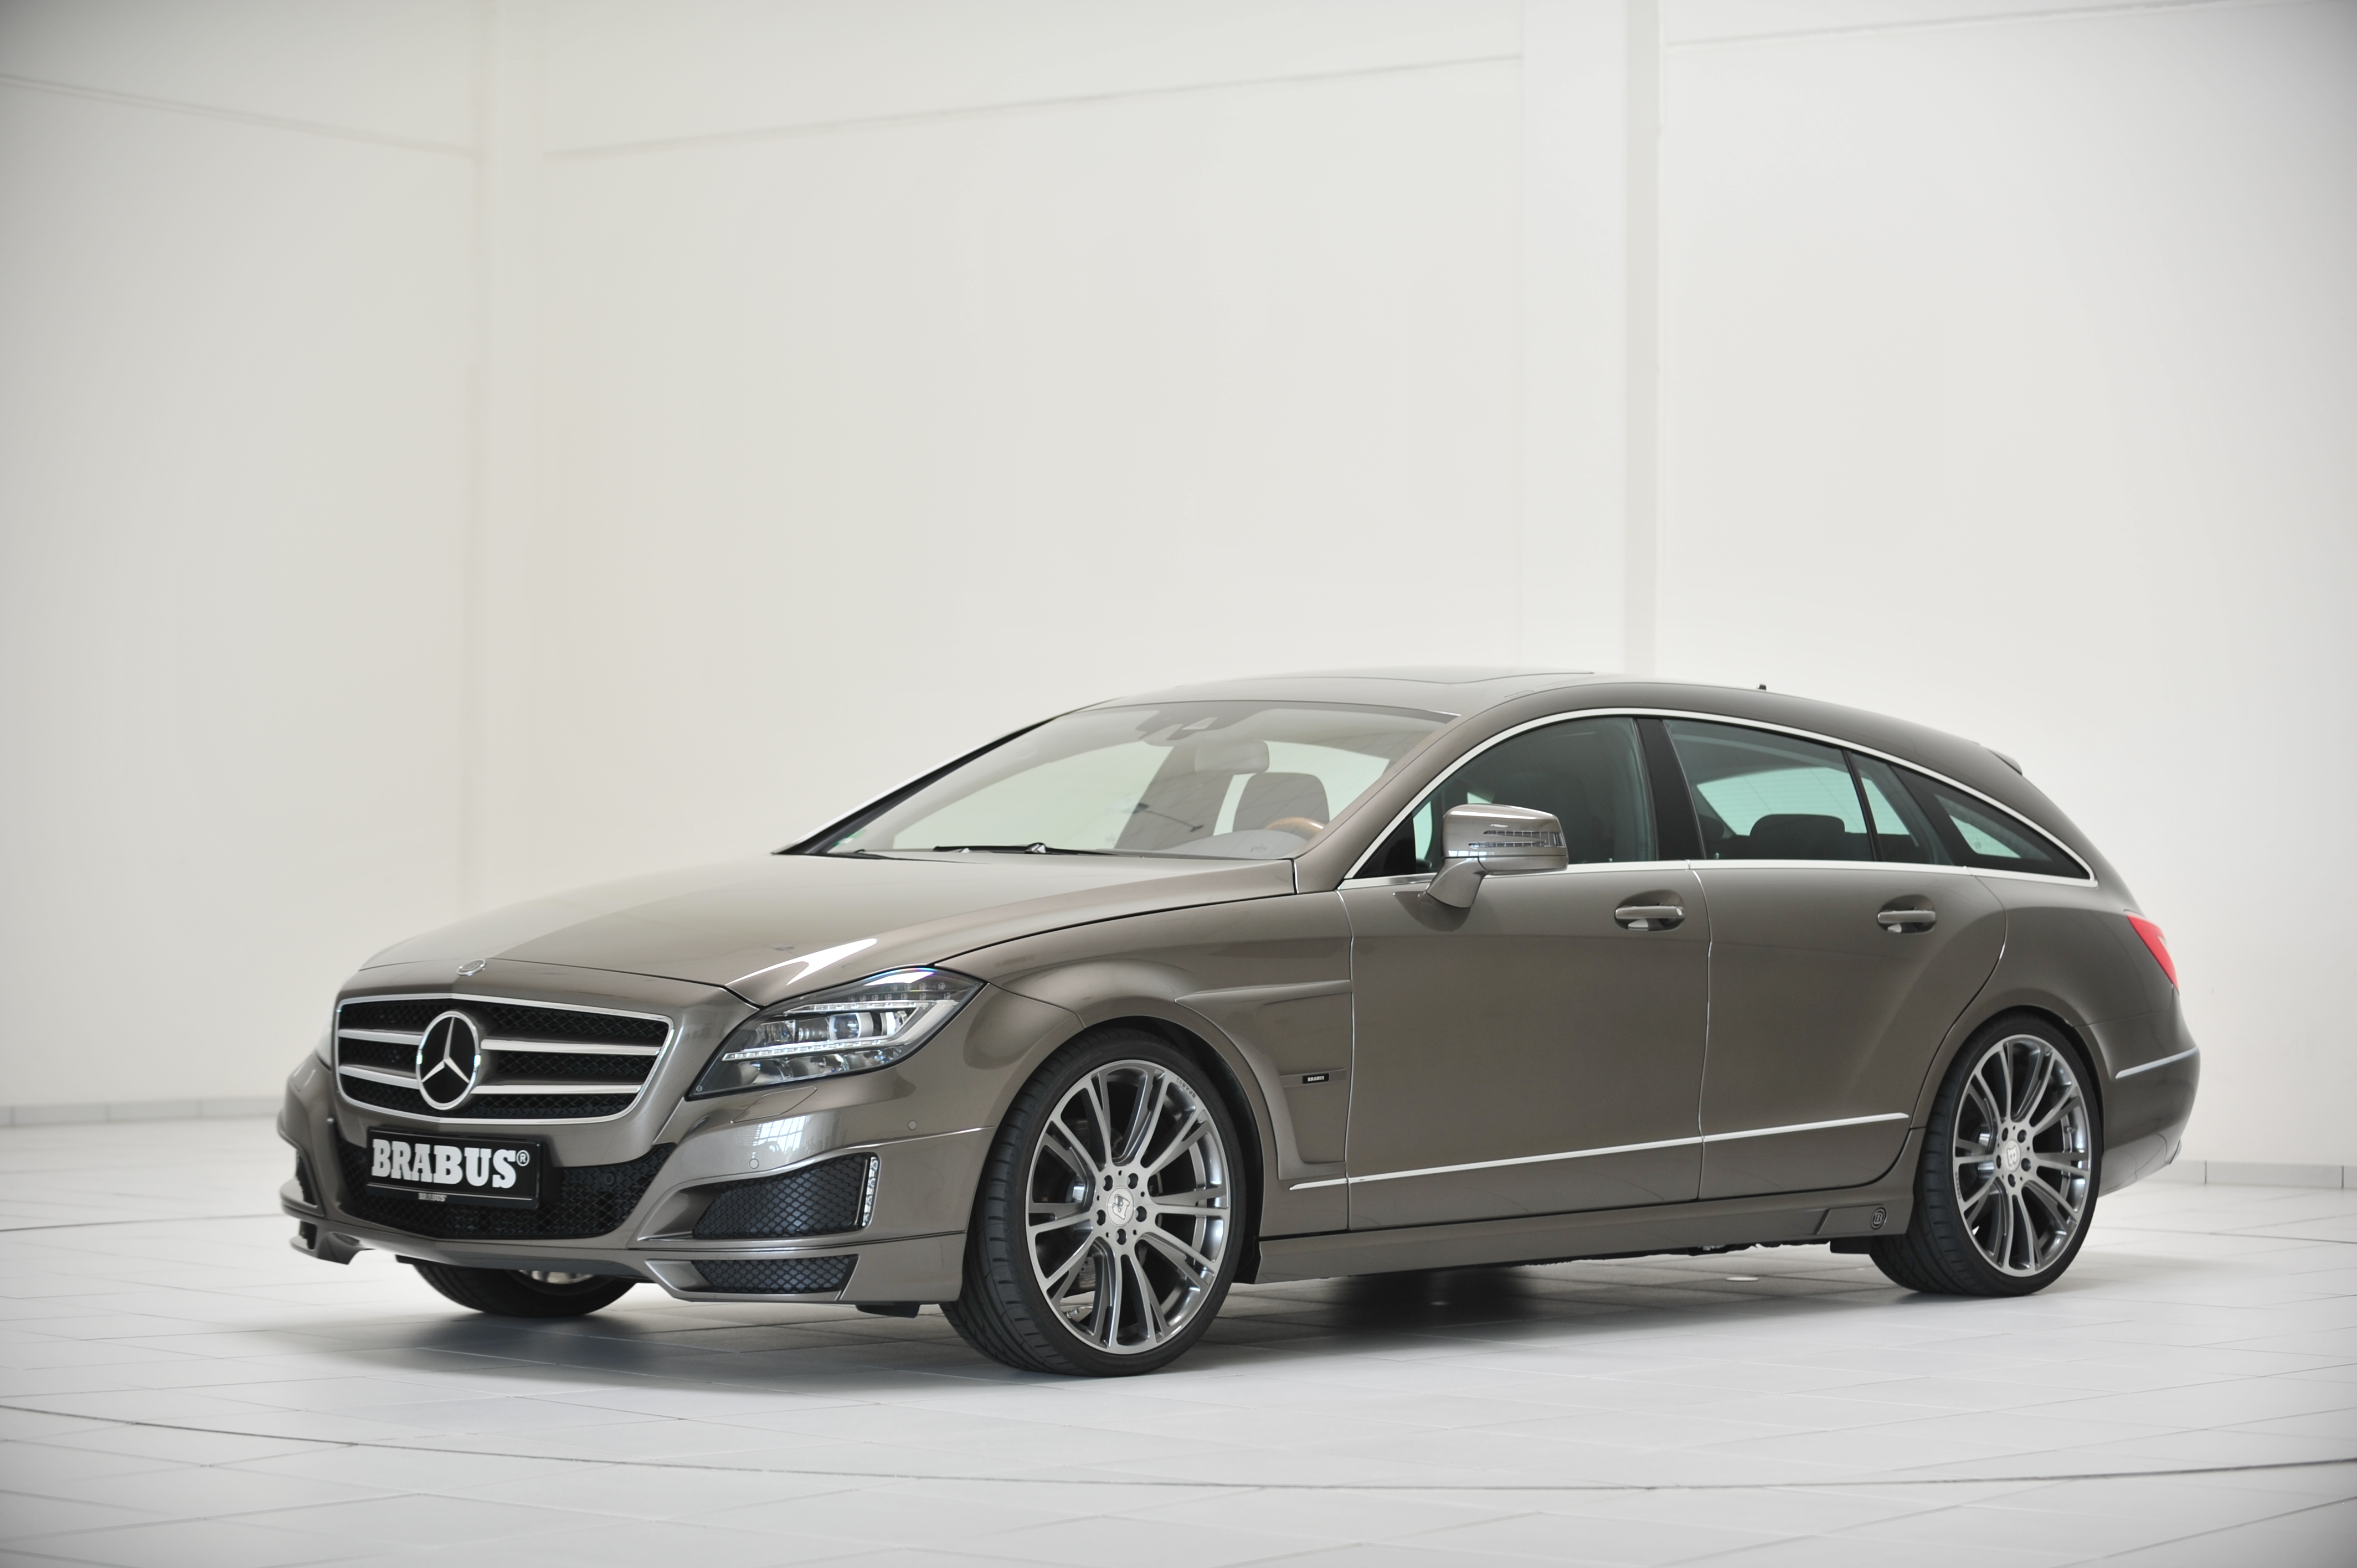 2013 mercedes benz cls shooting brake by brabus top speed for Mercedes benz cls station wagon